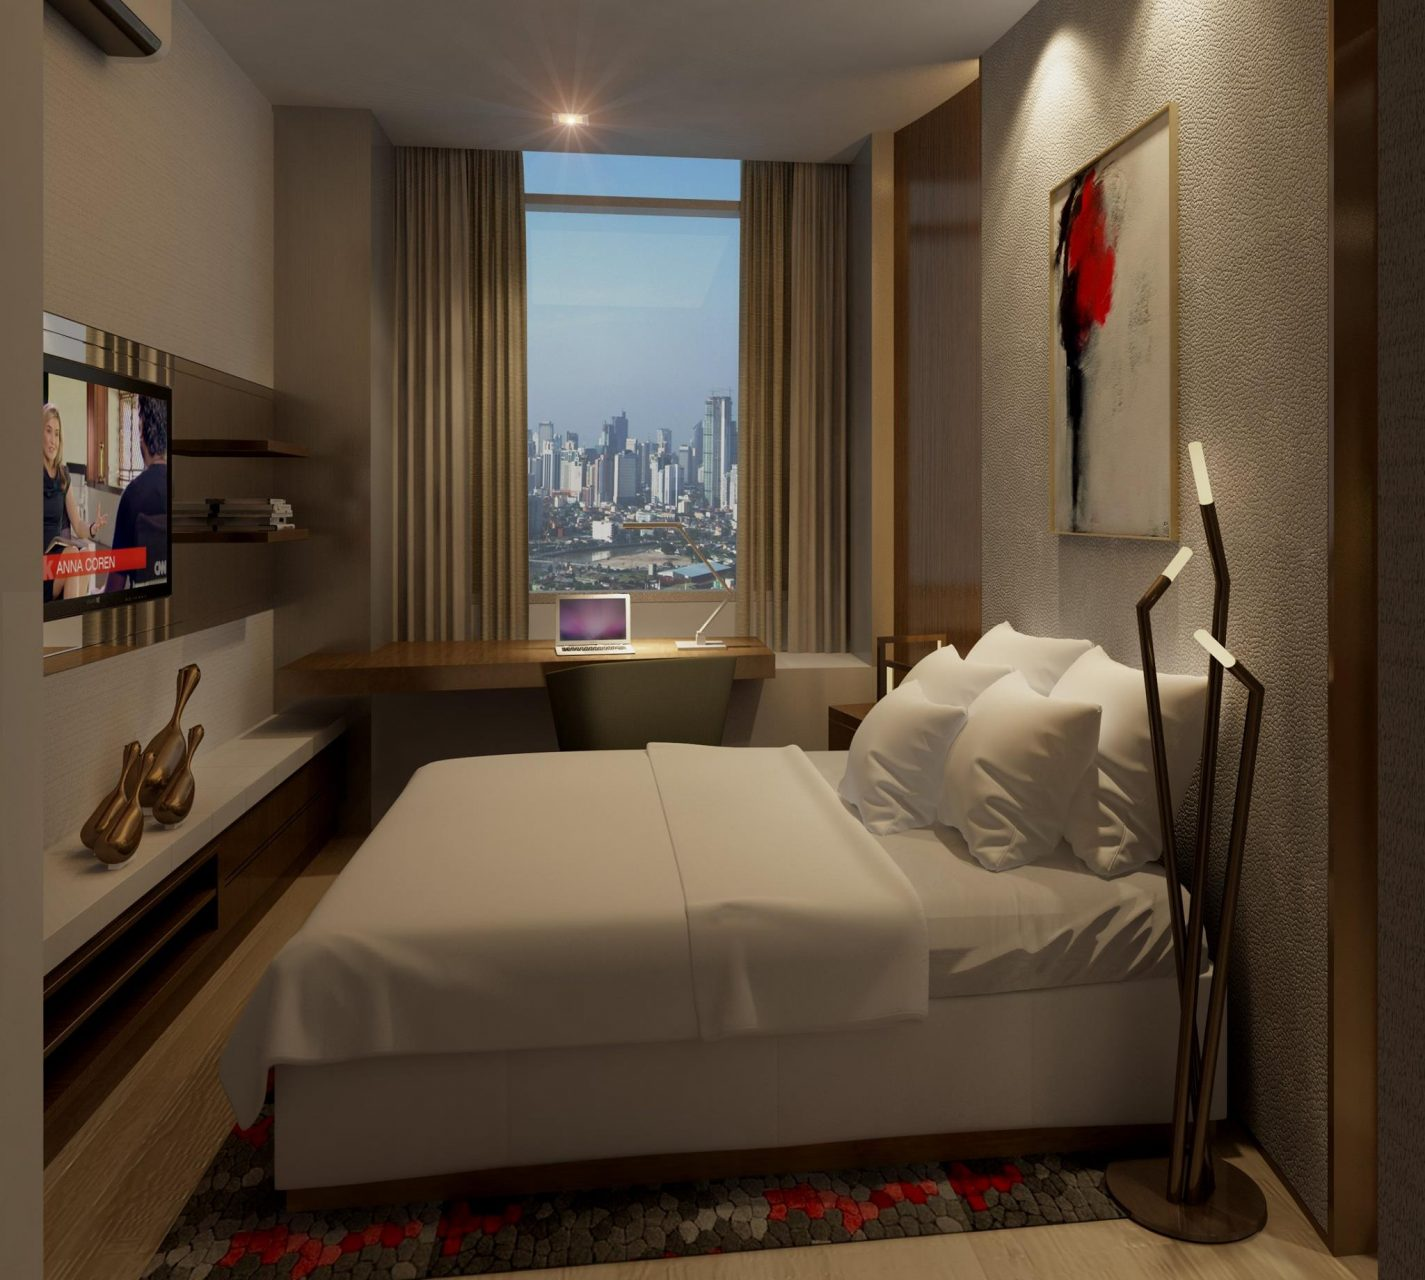 Master bedroom of a 1 bedroom unit buy manila condo for One bedrooms